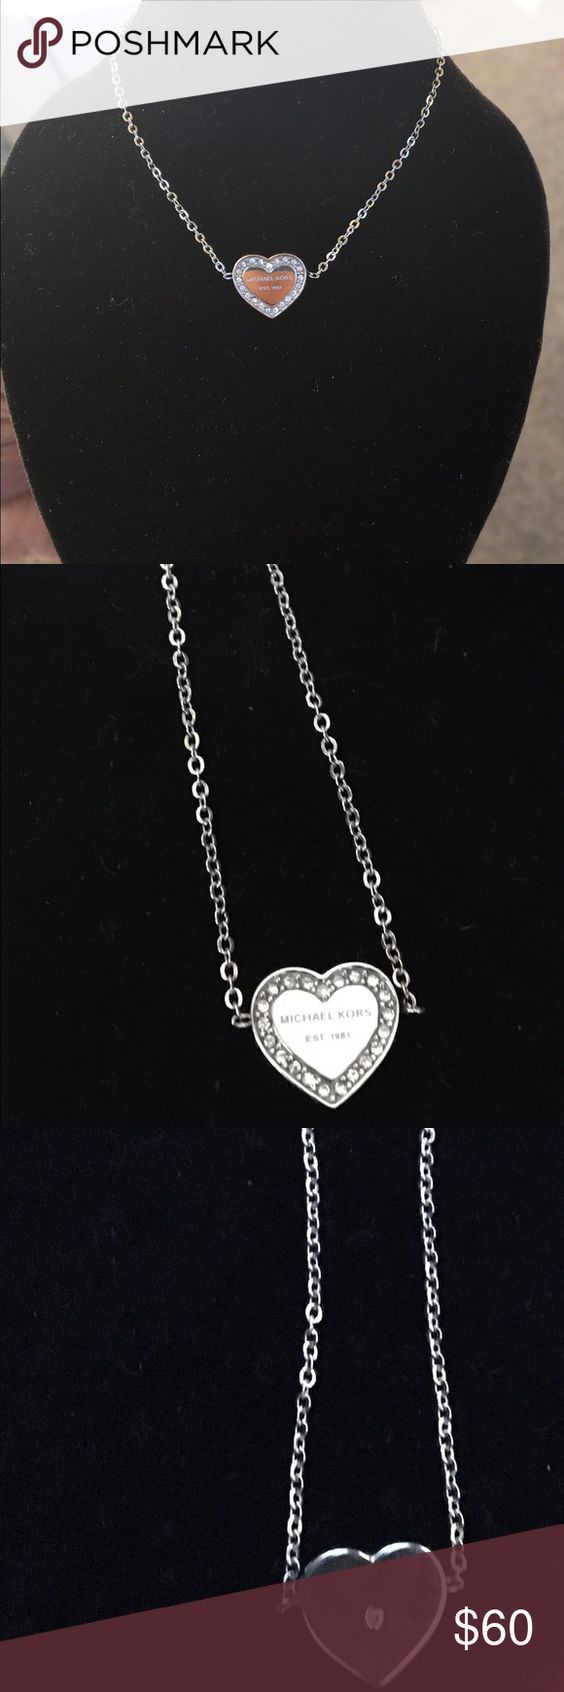 """Michael Kors Pave Silver-Tone Heart Charm Bracelet NWOT. In perfect condition and ready for the gift giving season! This is the perfect simple elegant piece of jewelry for the special someone in your life.  The heart charm is accented by beautiful sparkly stones and a single centered on the back. Make it yours today! ***measures up to size 7"""" Michael Kors Jewelry Bracelets"""